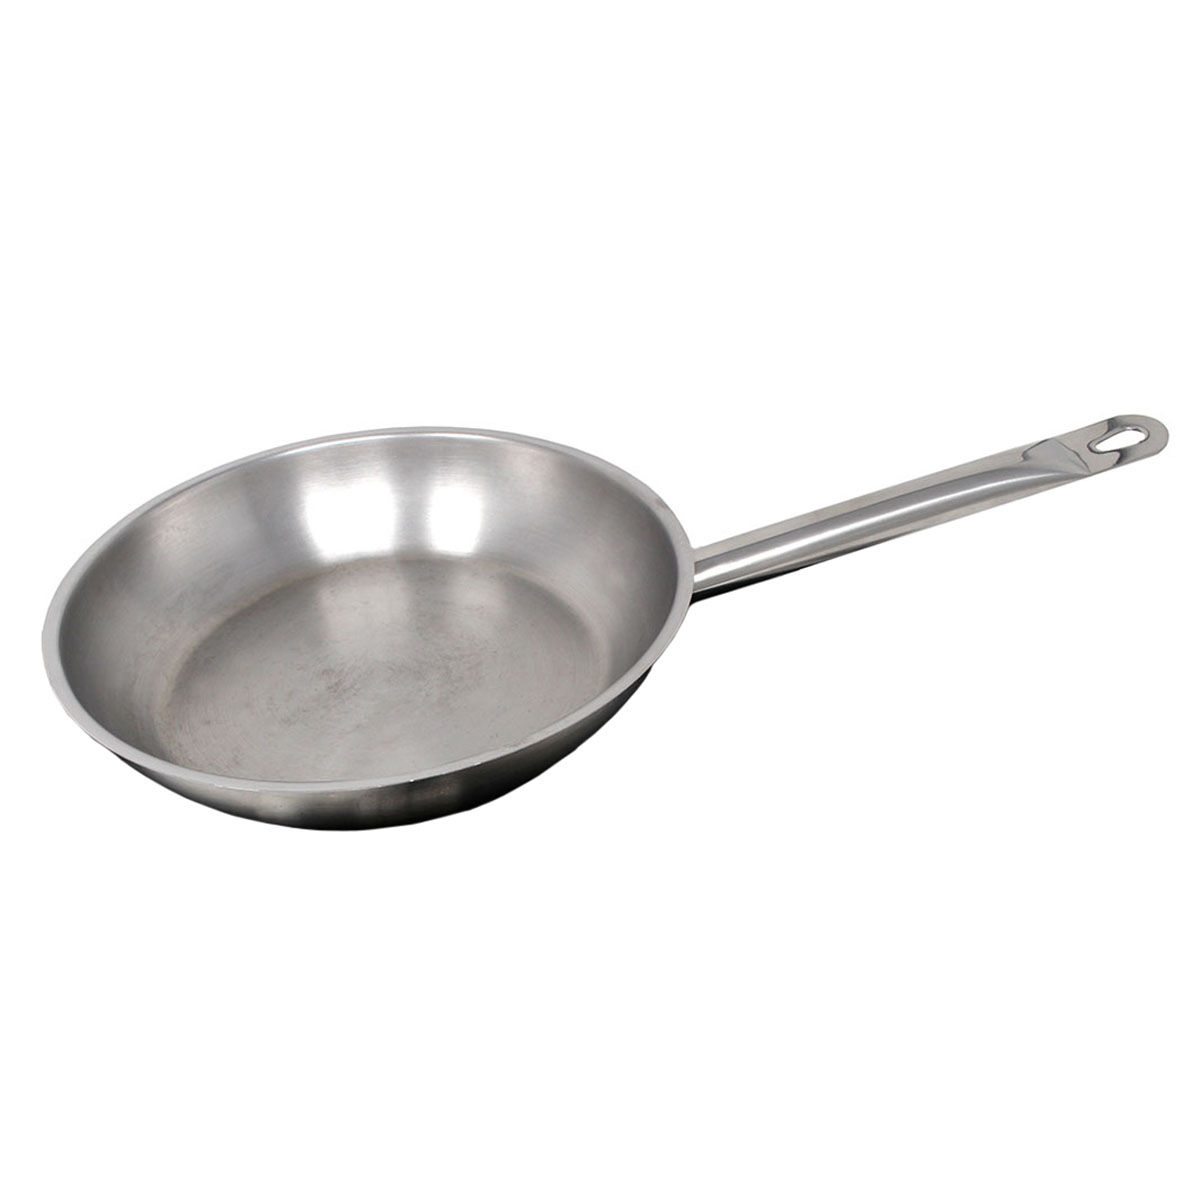 "9.5"" Induction Frying Pan"